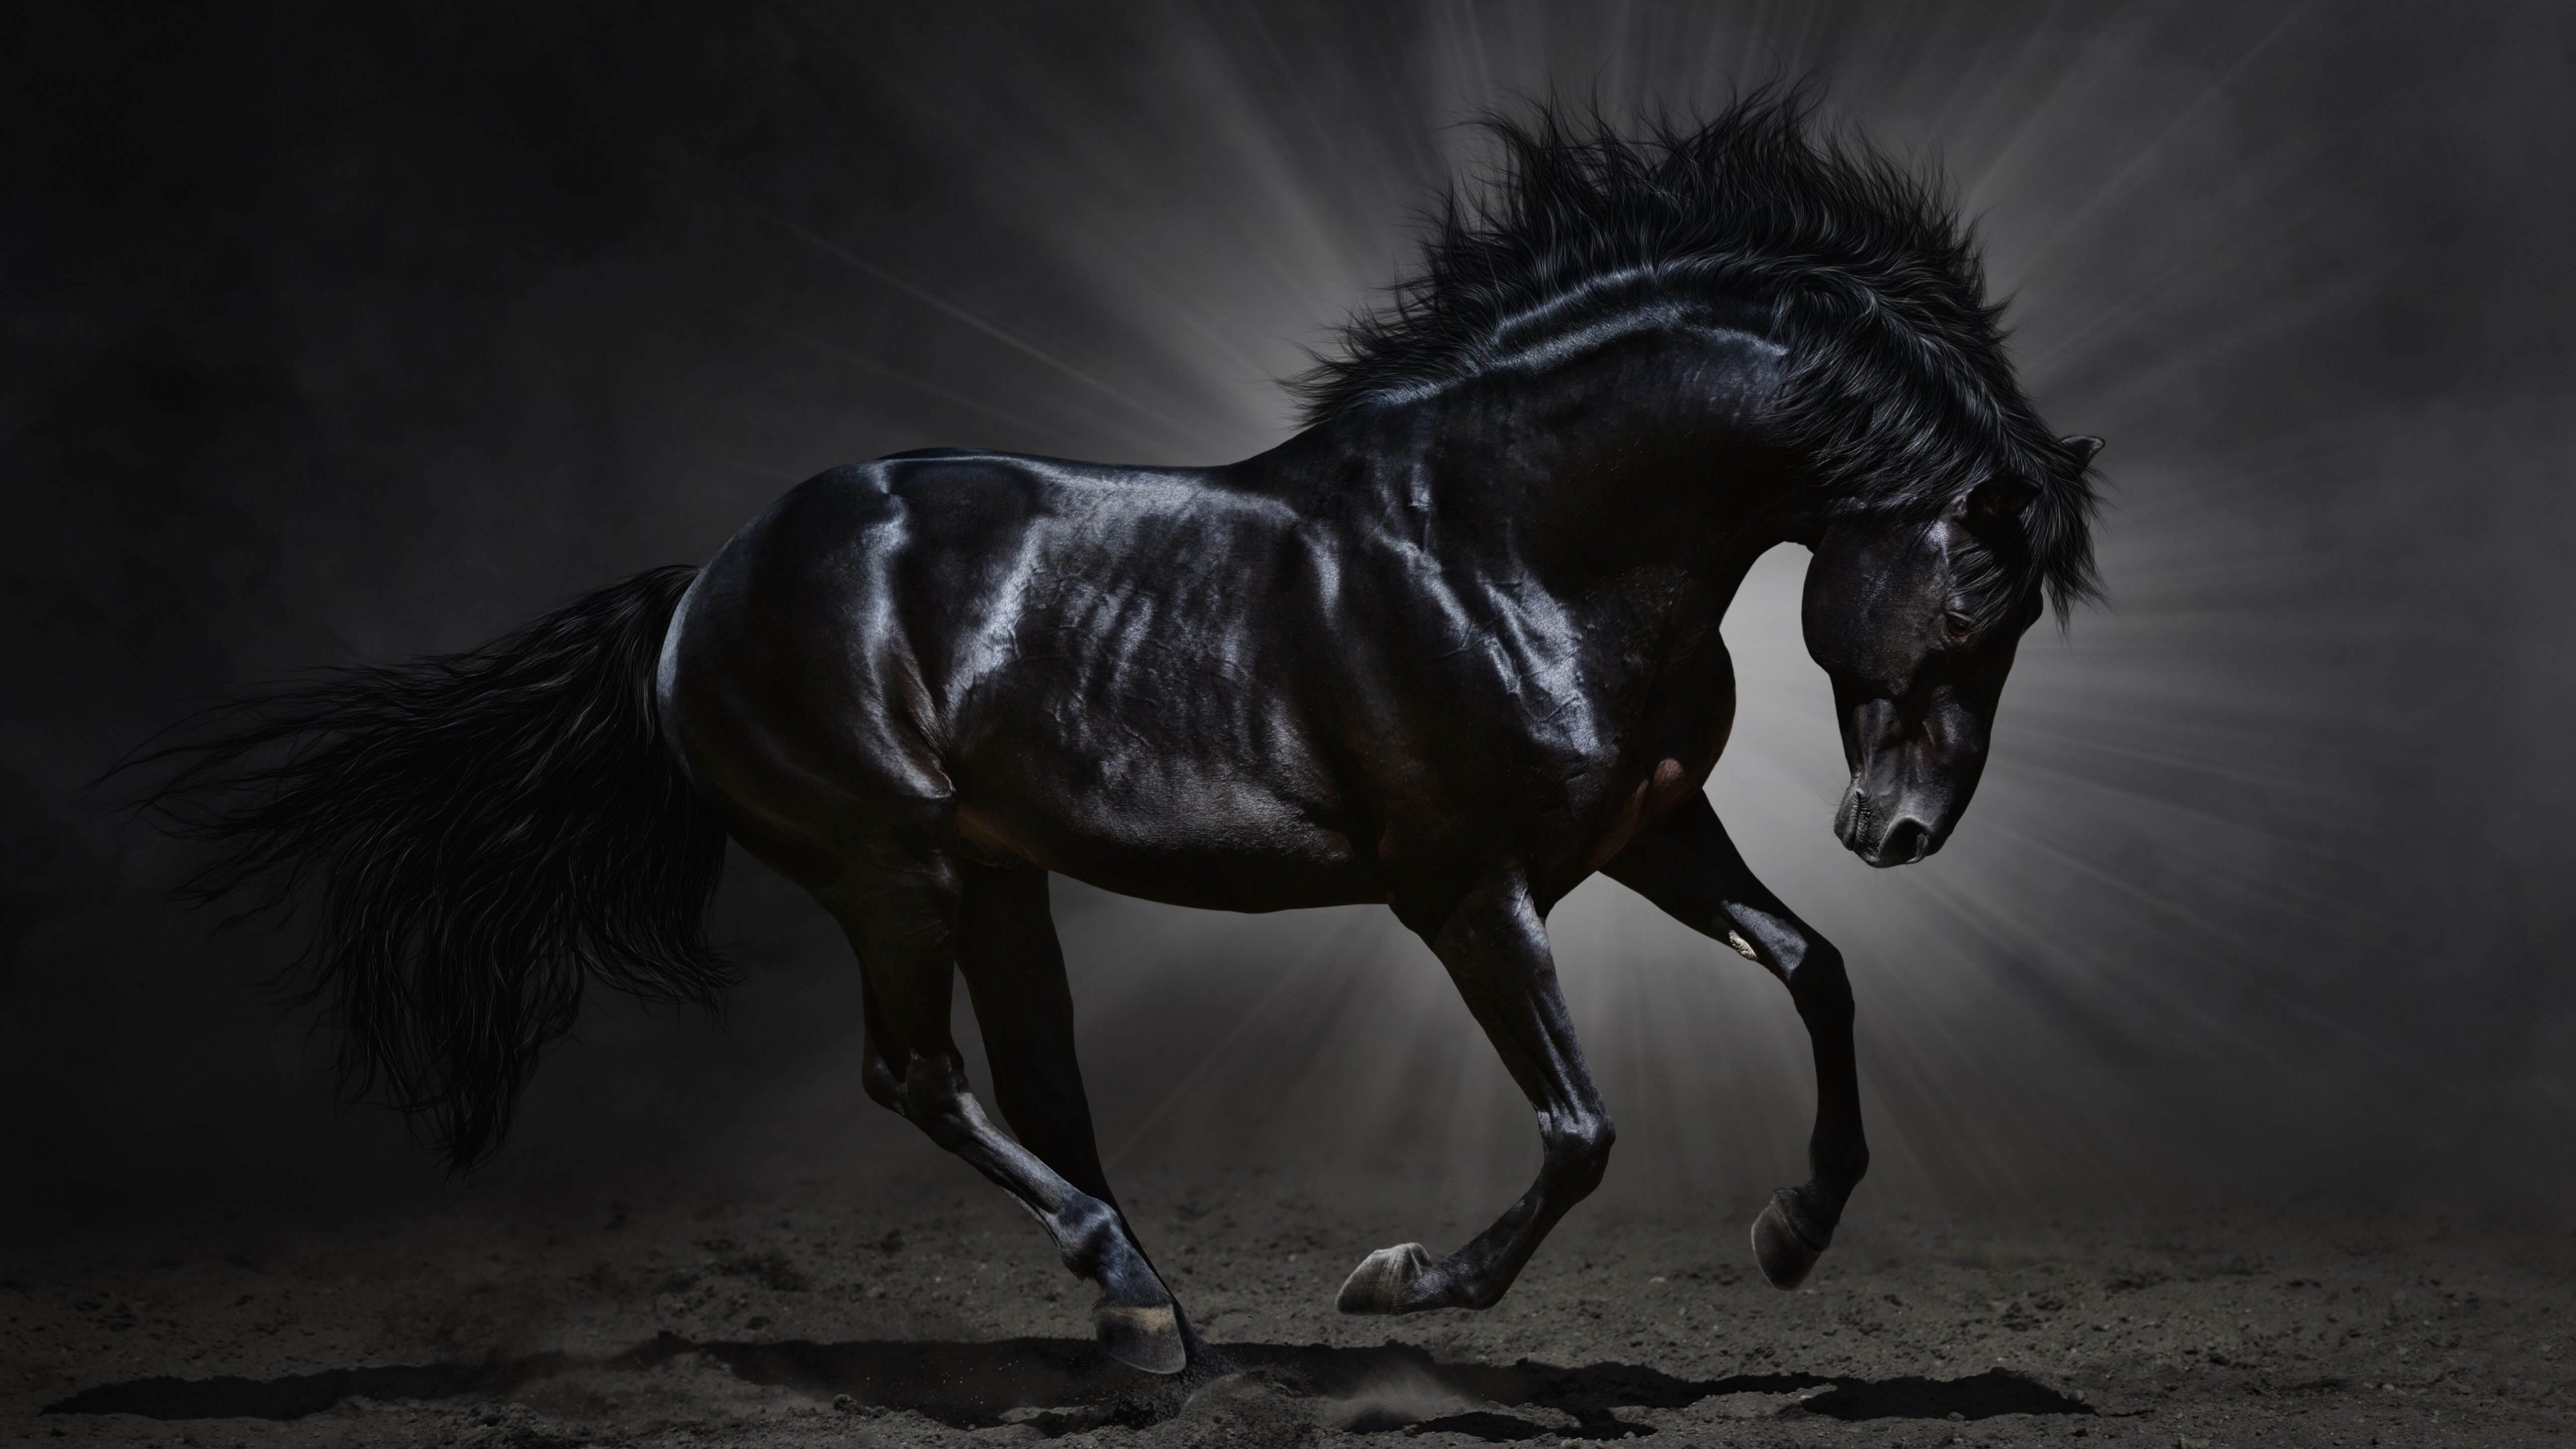 3840x2160 Black Horse Desktop Wallpaper | Download Dark Horse HD wallpaper for 4K  3840 x 2160 -